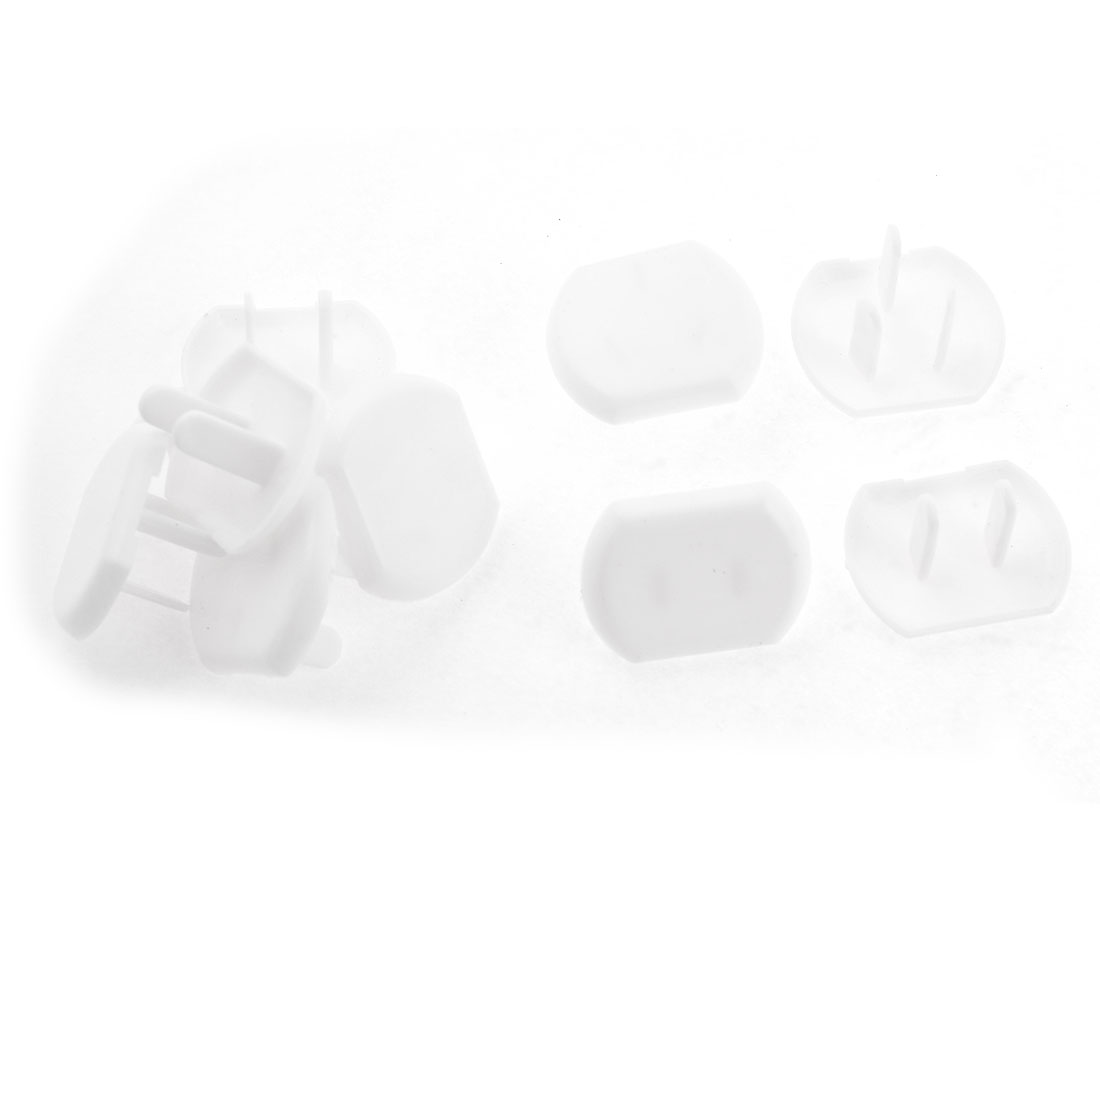 10 Pcs White Oval Plastic US 3P 2 Terminals Plug Protecting Socket Cover